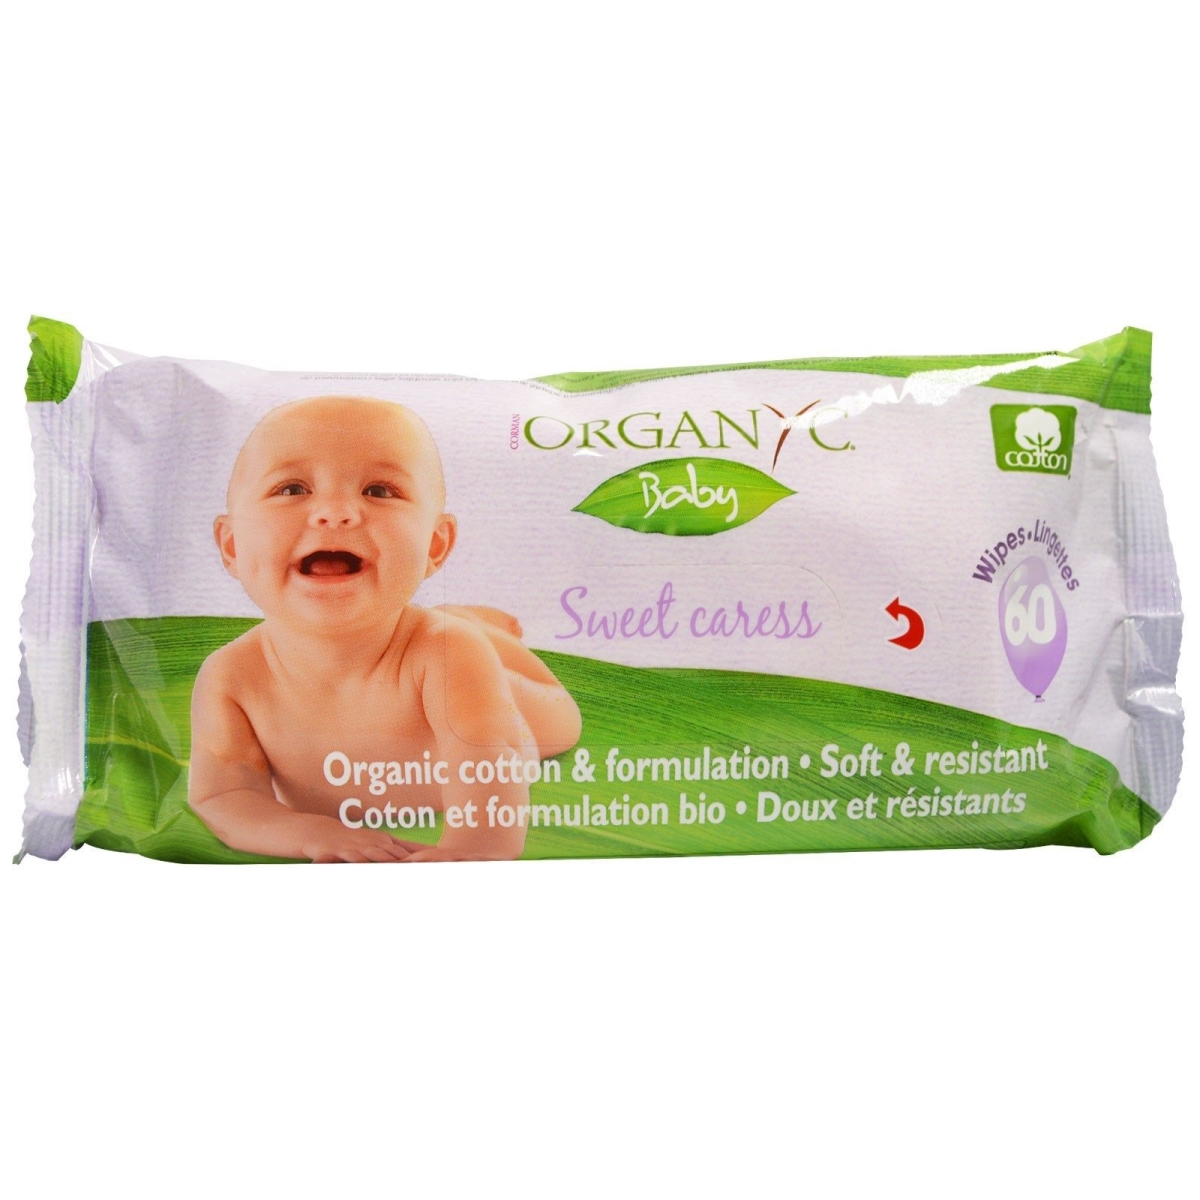 Organyc 1600329 Baby Wipes - 100 Percent Organic Cotton Sweet Caress - 60 Count